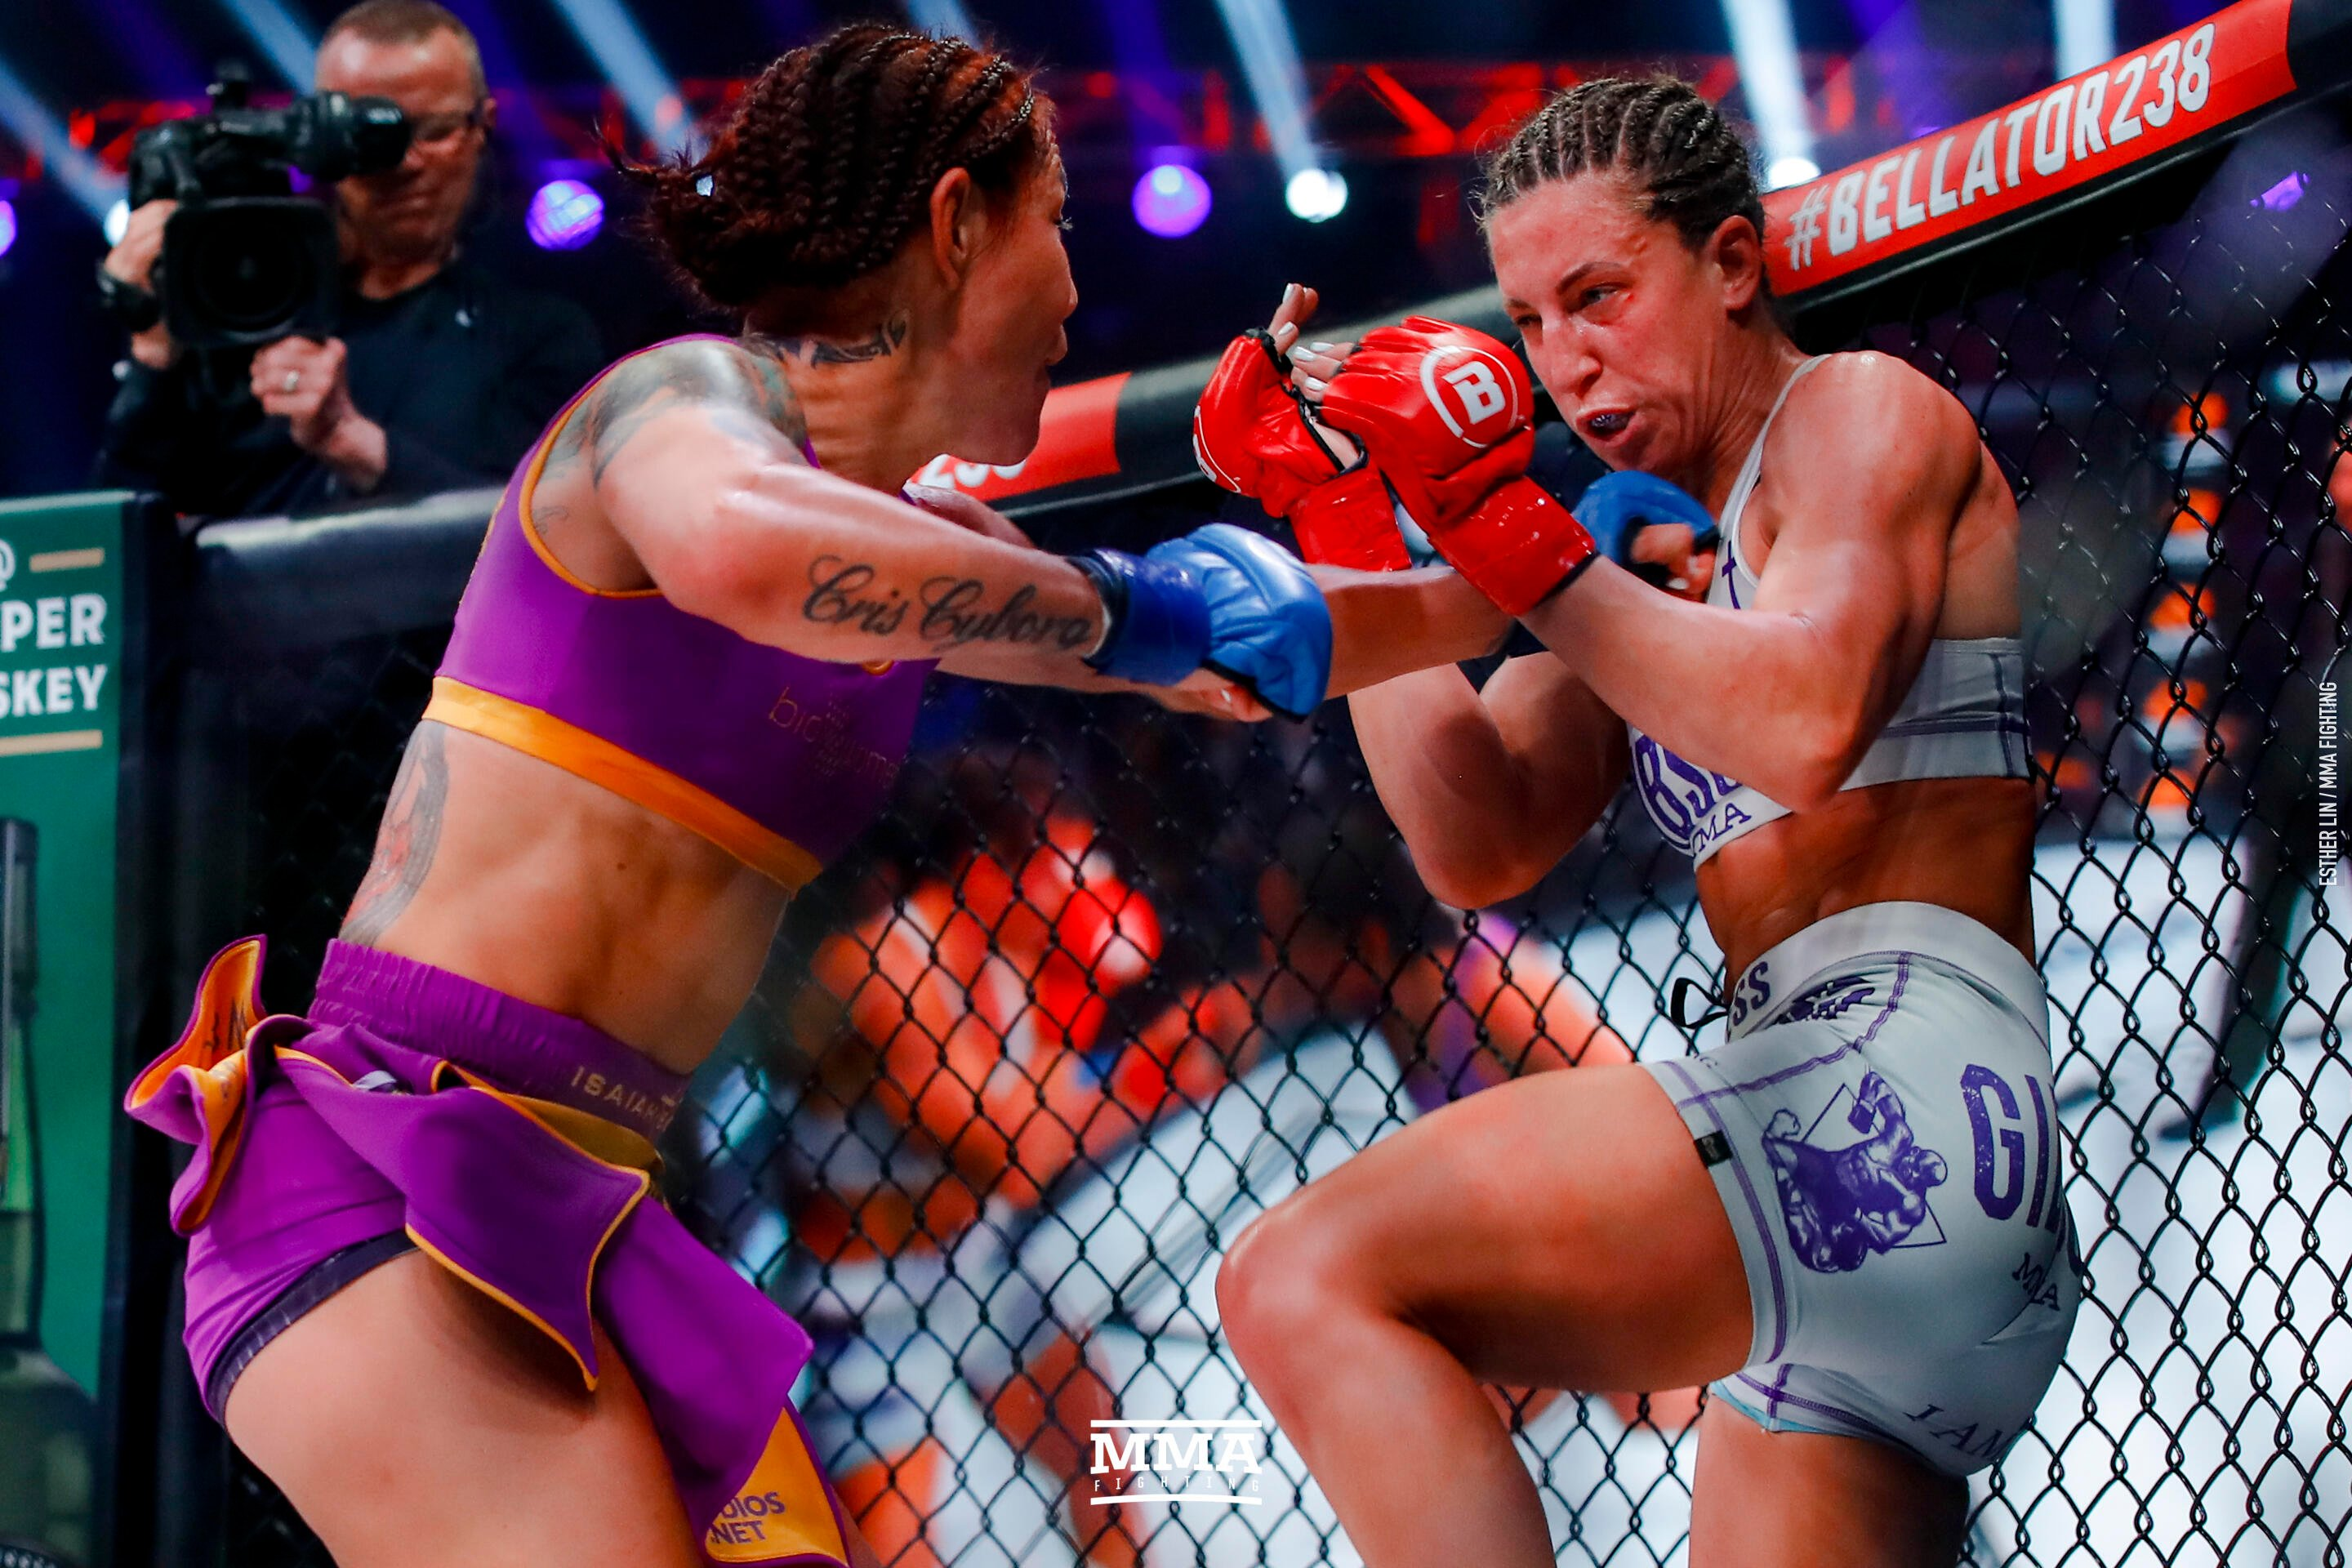 Cris Cyborg makes history taking Bellator featherweight title after knocking out Julia Budd in fourth round to become world champion in four promotions including IFC, UFC and Strikeforce